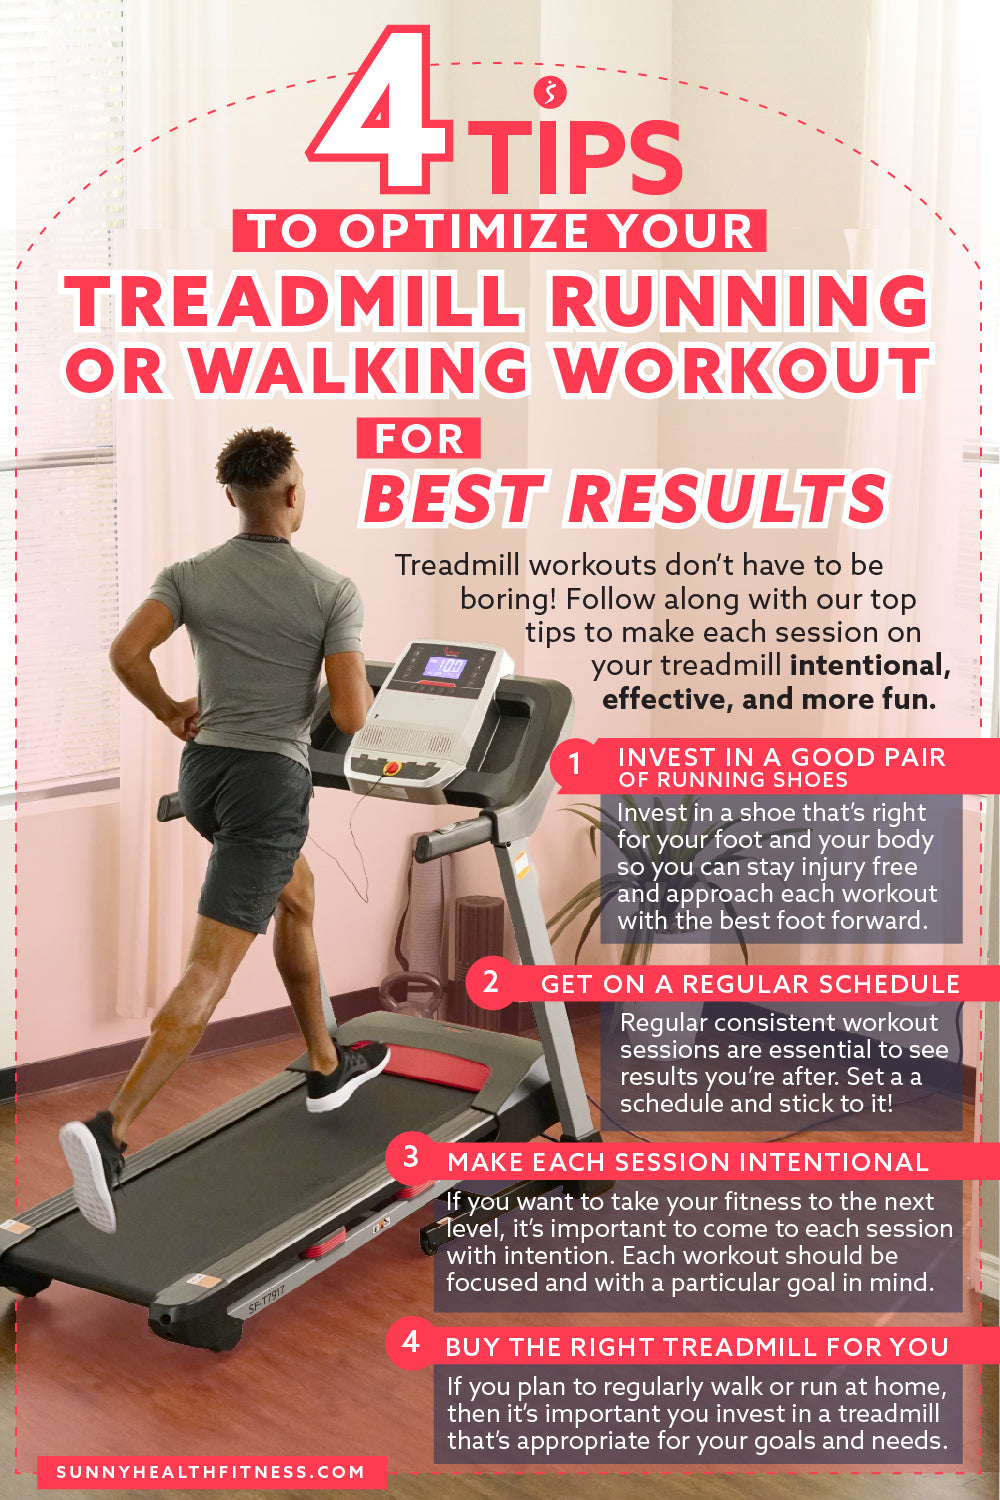 4 Tips to Optimize Your Treadmill Running or Walking Workout Infographic